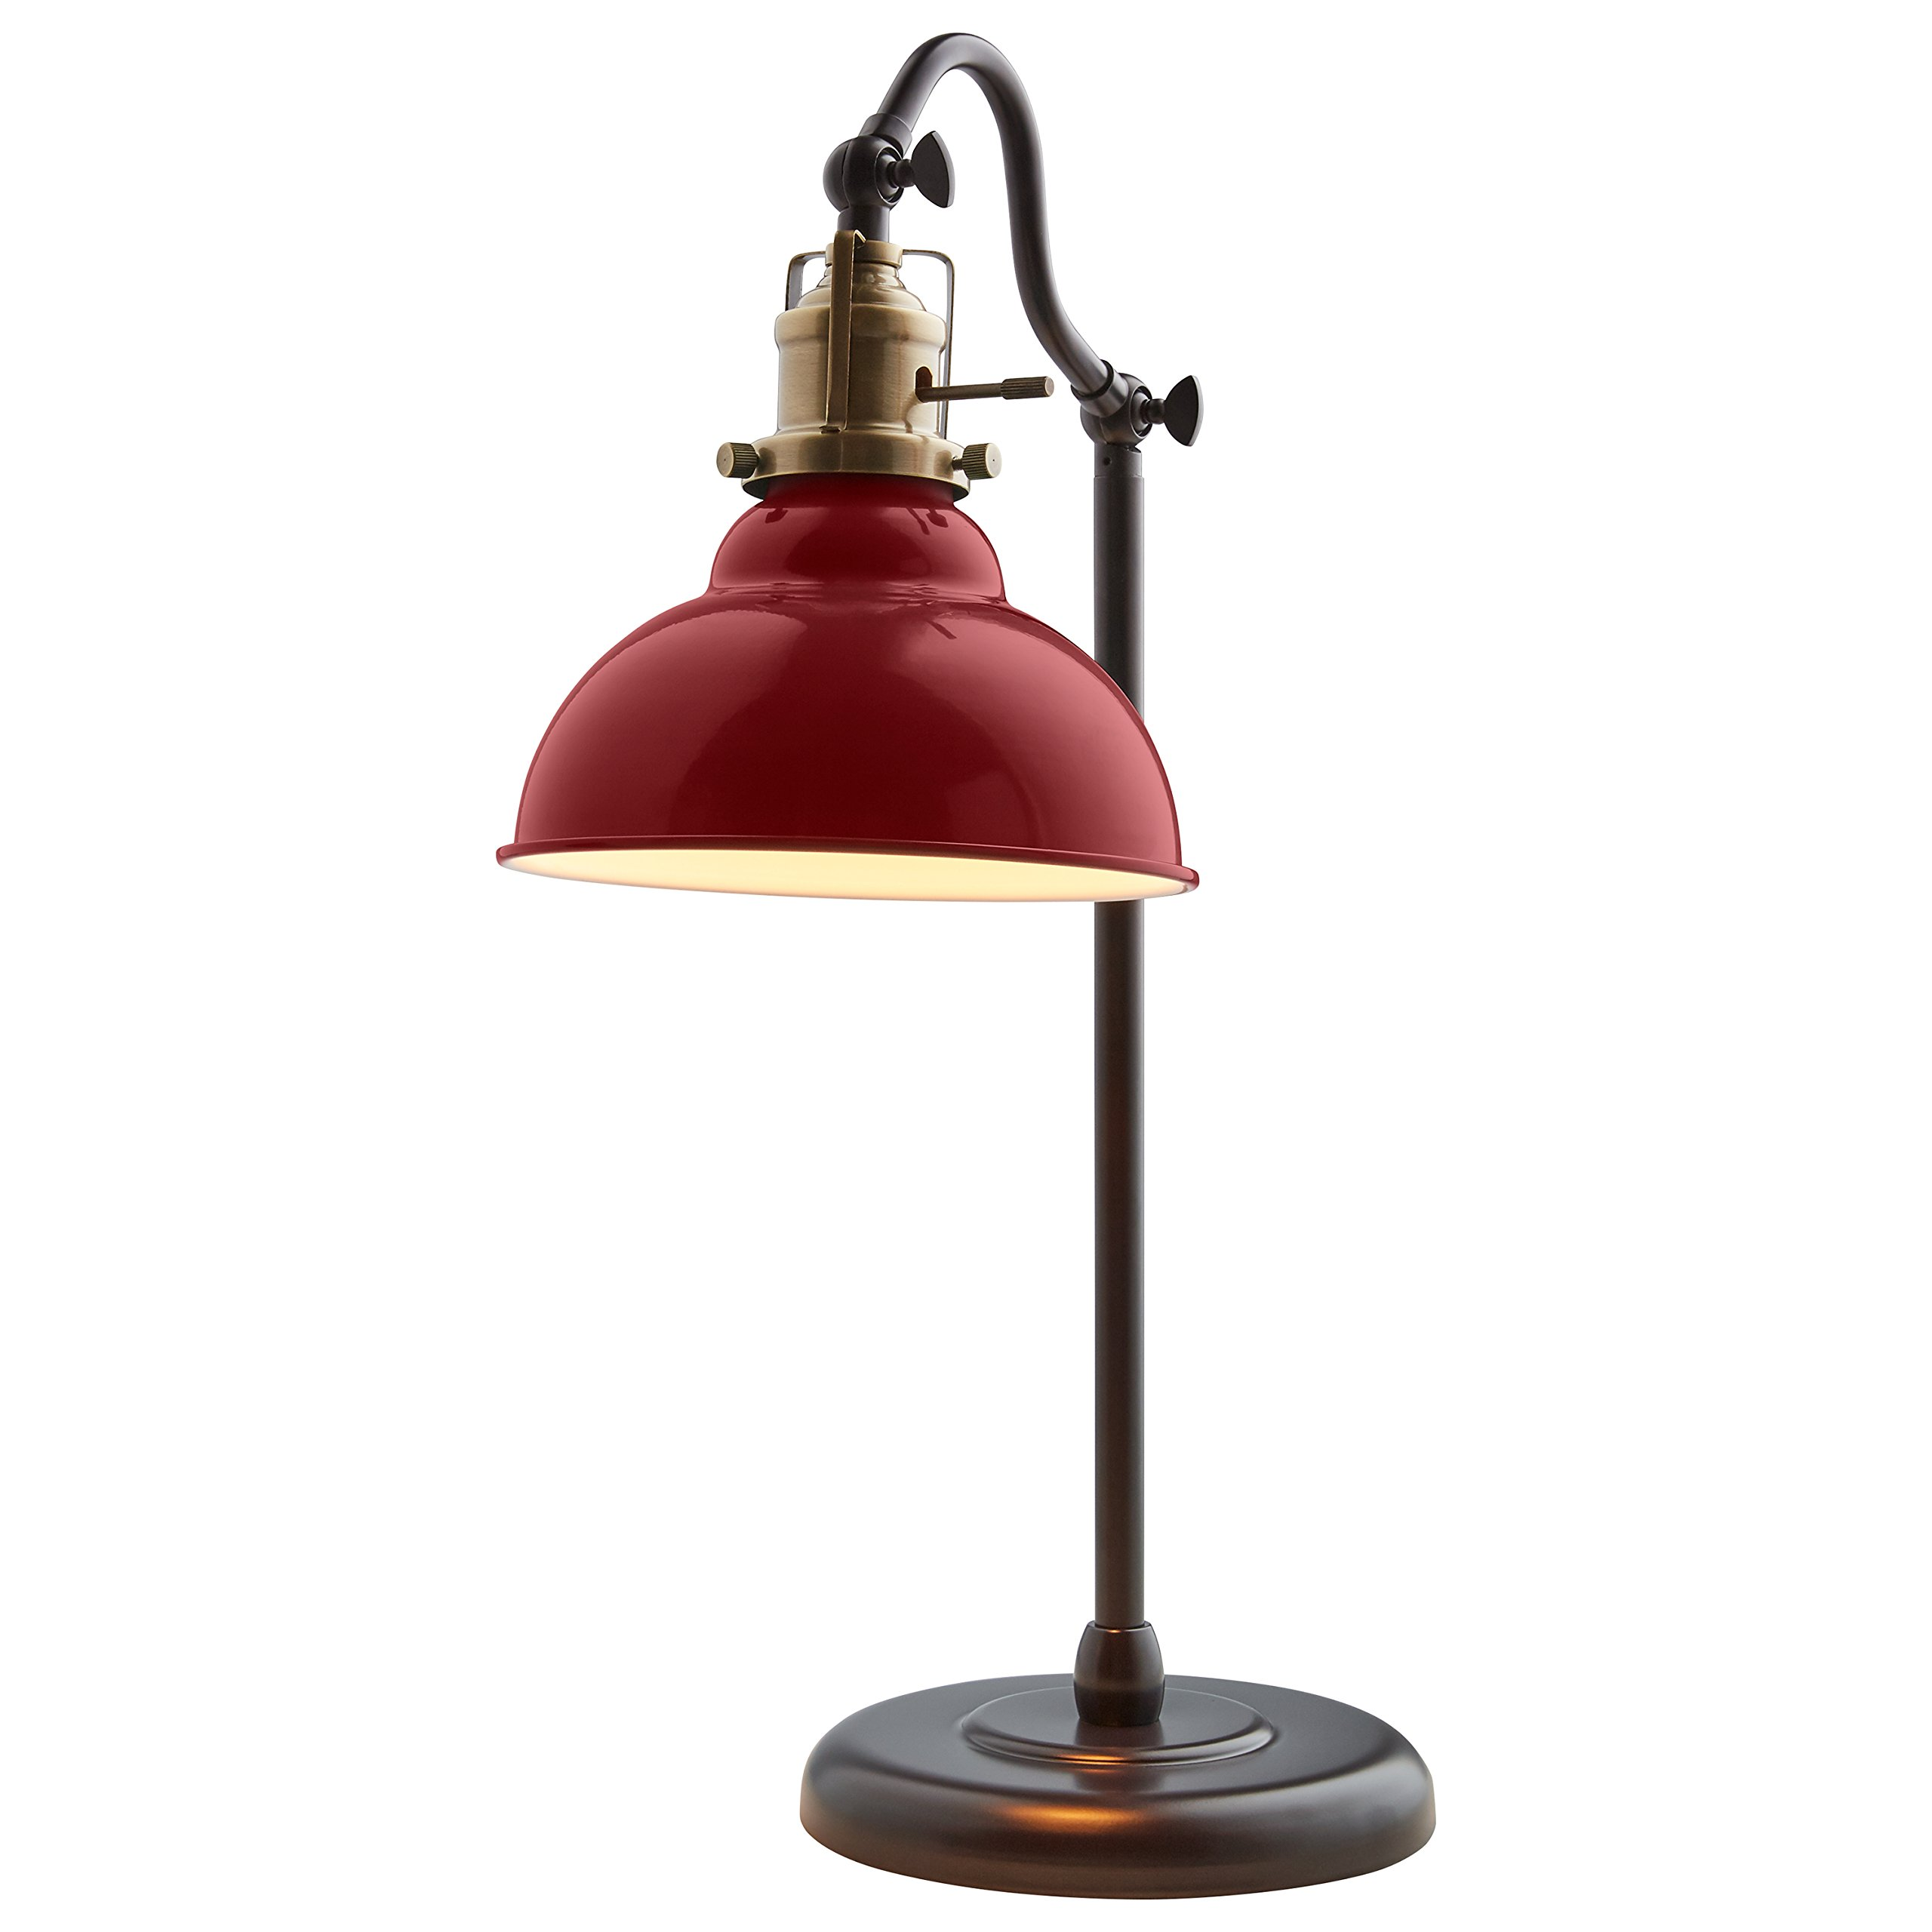 Stone & Beam Walters Vintage Task Lamp with Bulb, 19.9''H, Red by Stone & Beam (Image #1)